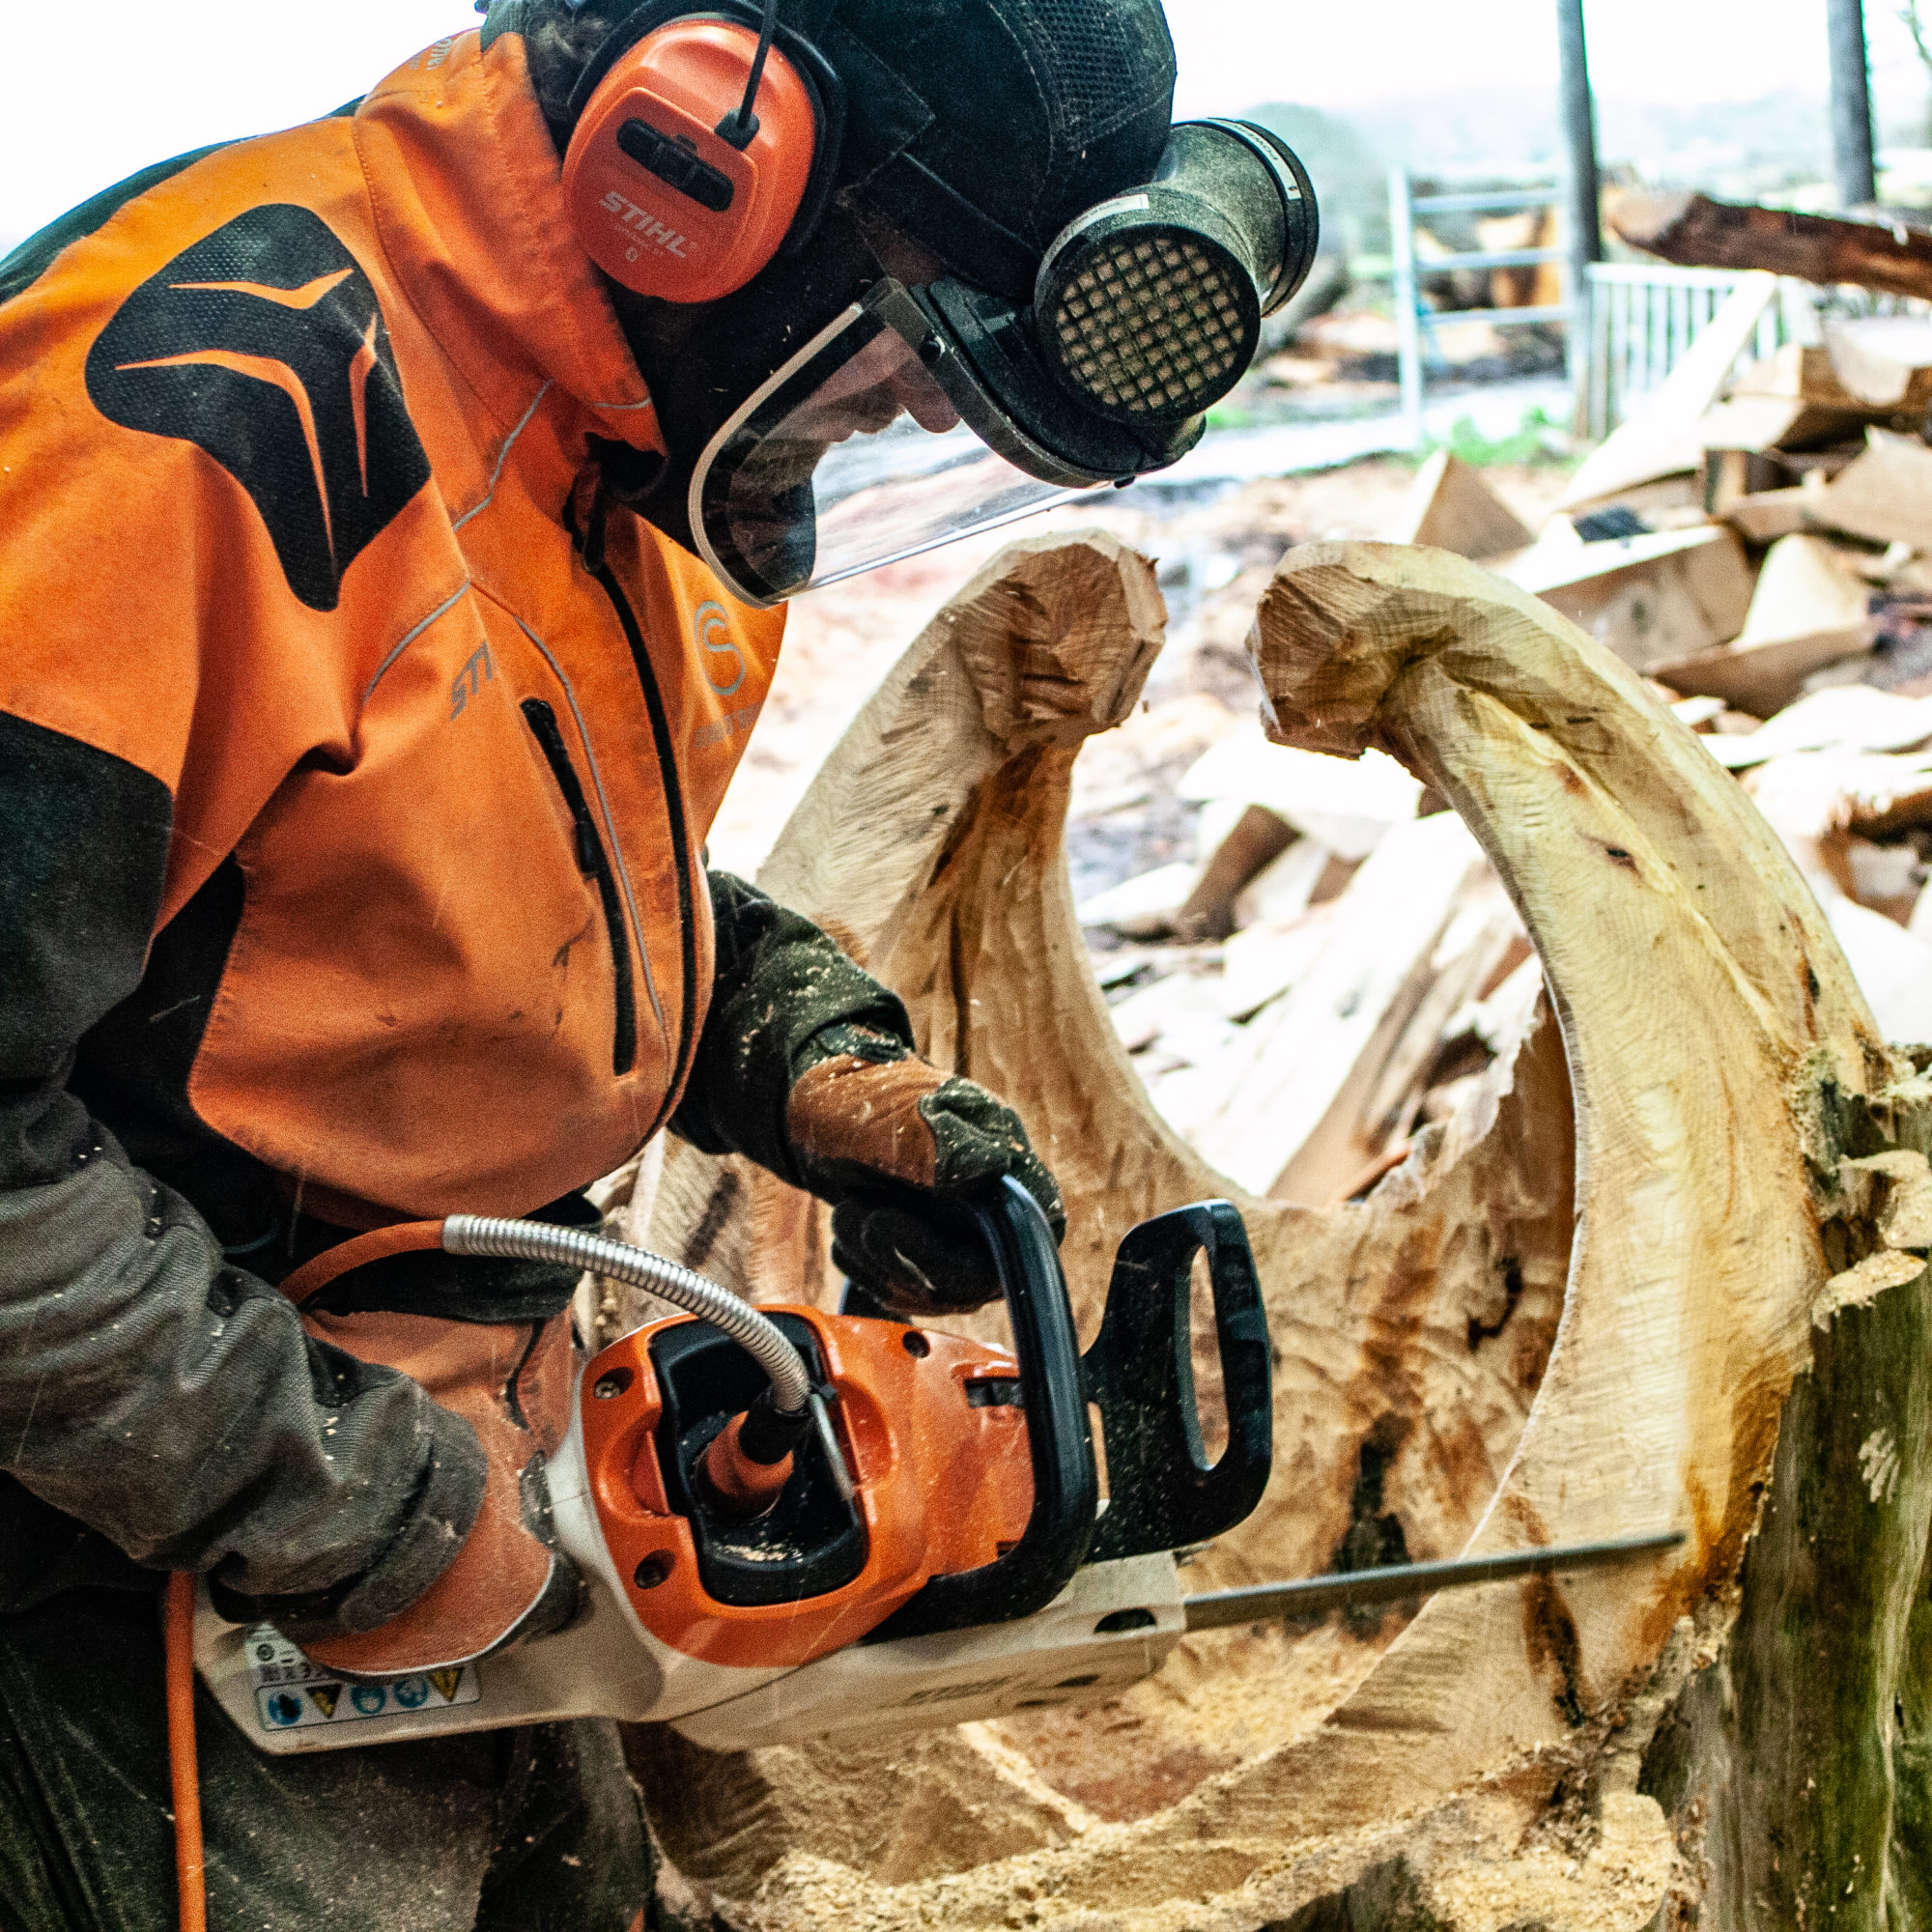 Simon O'Rourke using a chainsaw to create his game of thrones sculpture: a dragon egg casket